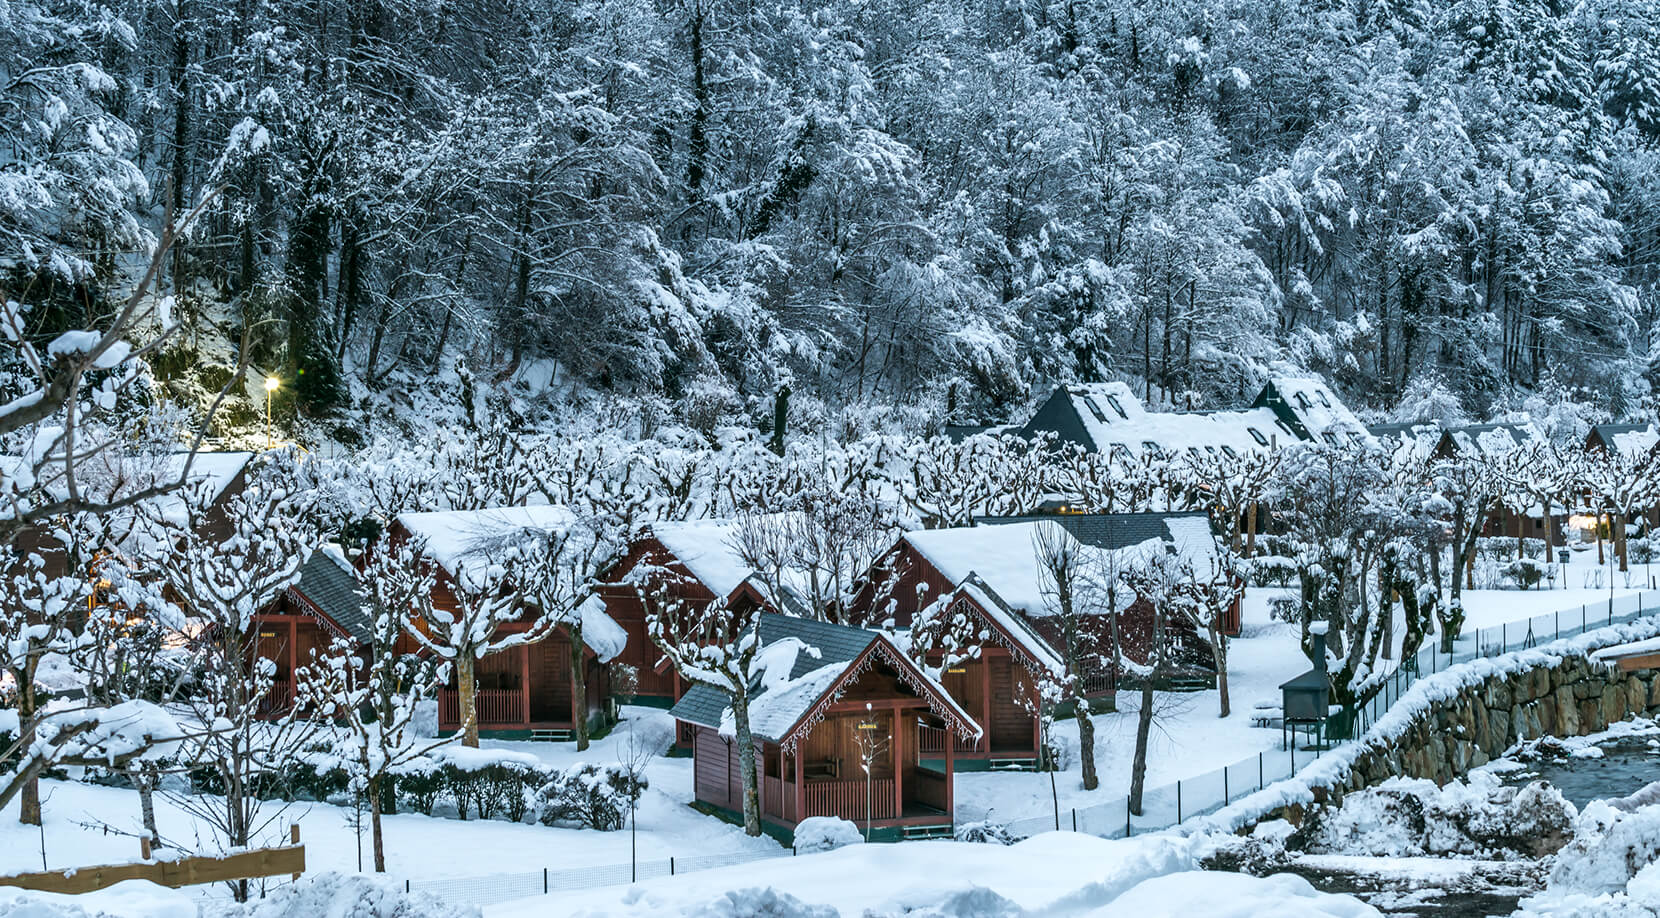 Cozy bungalows and cabins near Baqueira, Pyrenees